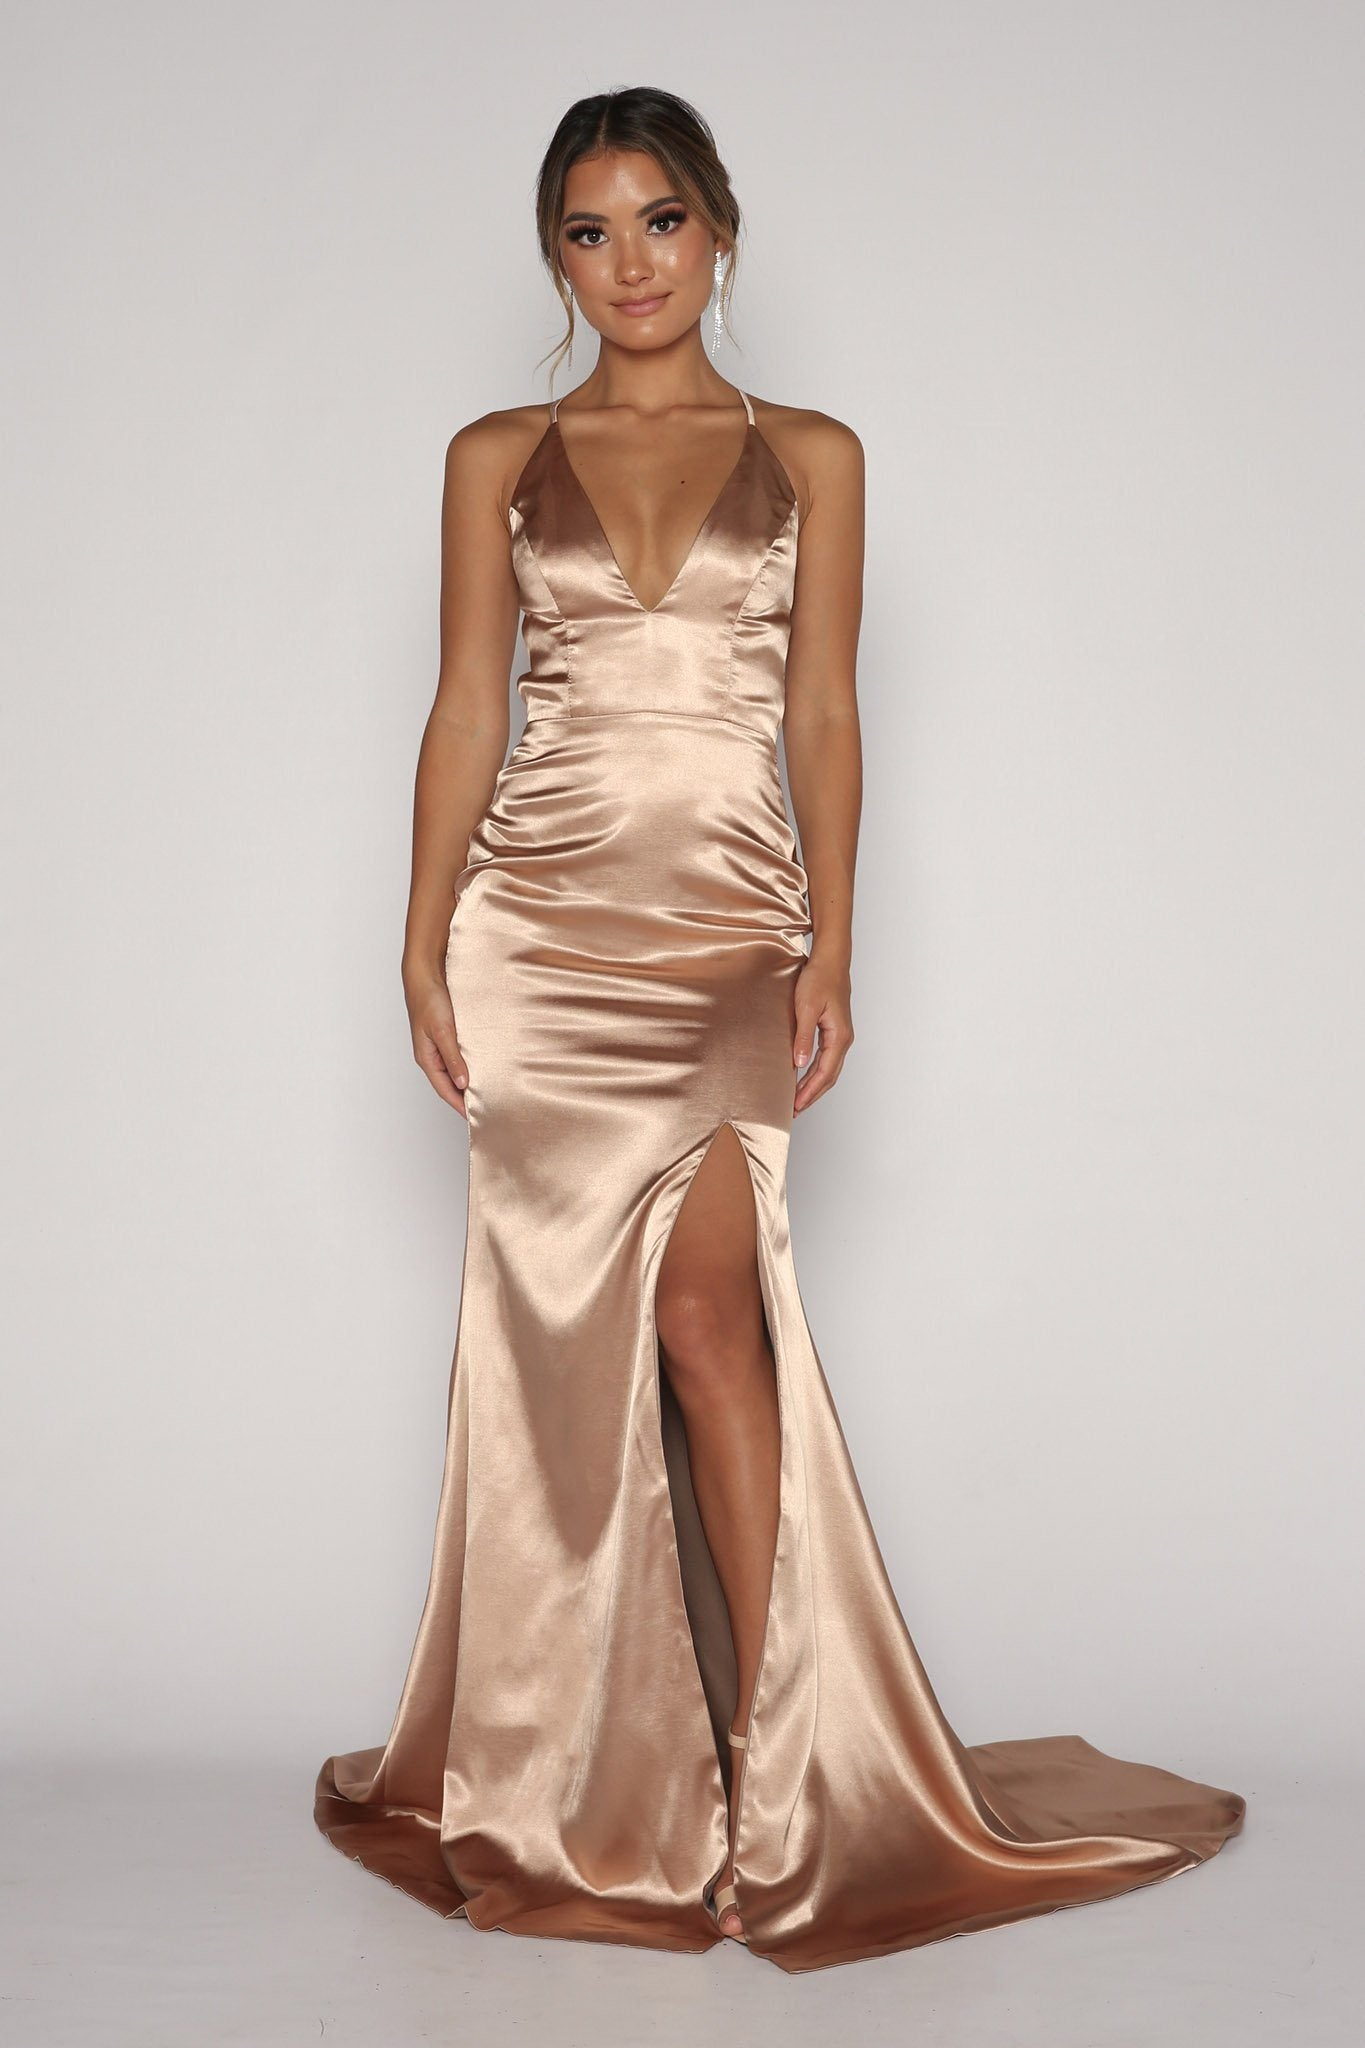 Nude Champagne Coloured Satin Formal Full Length Maxi Dress with Deep V Plunging Neckline, High Front Left Slit, Lace-Up Straps on Open Back, Floor Sweep Train